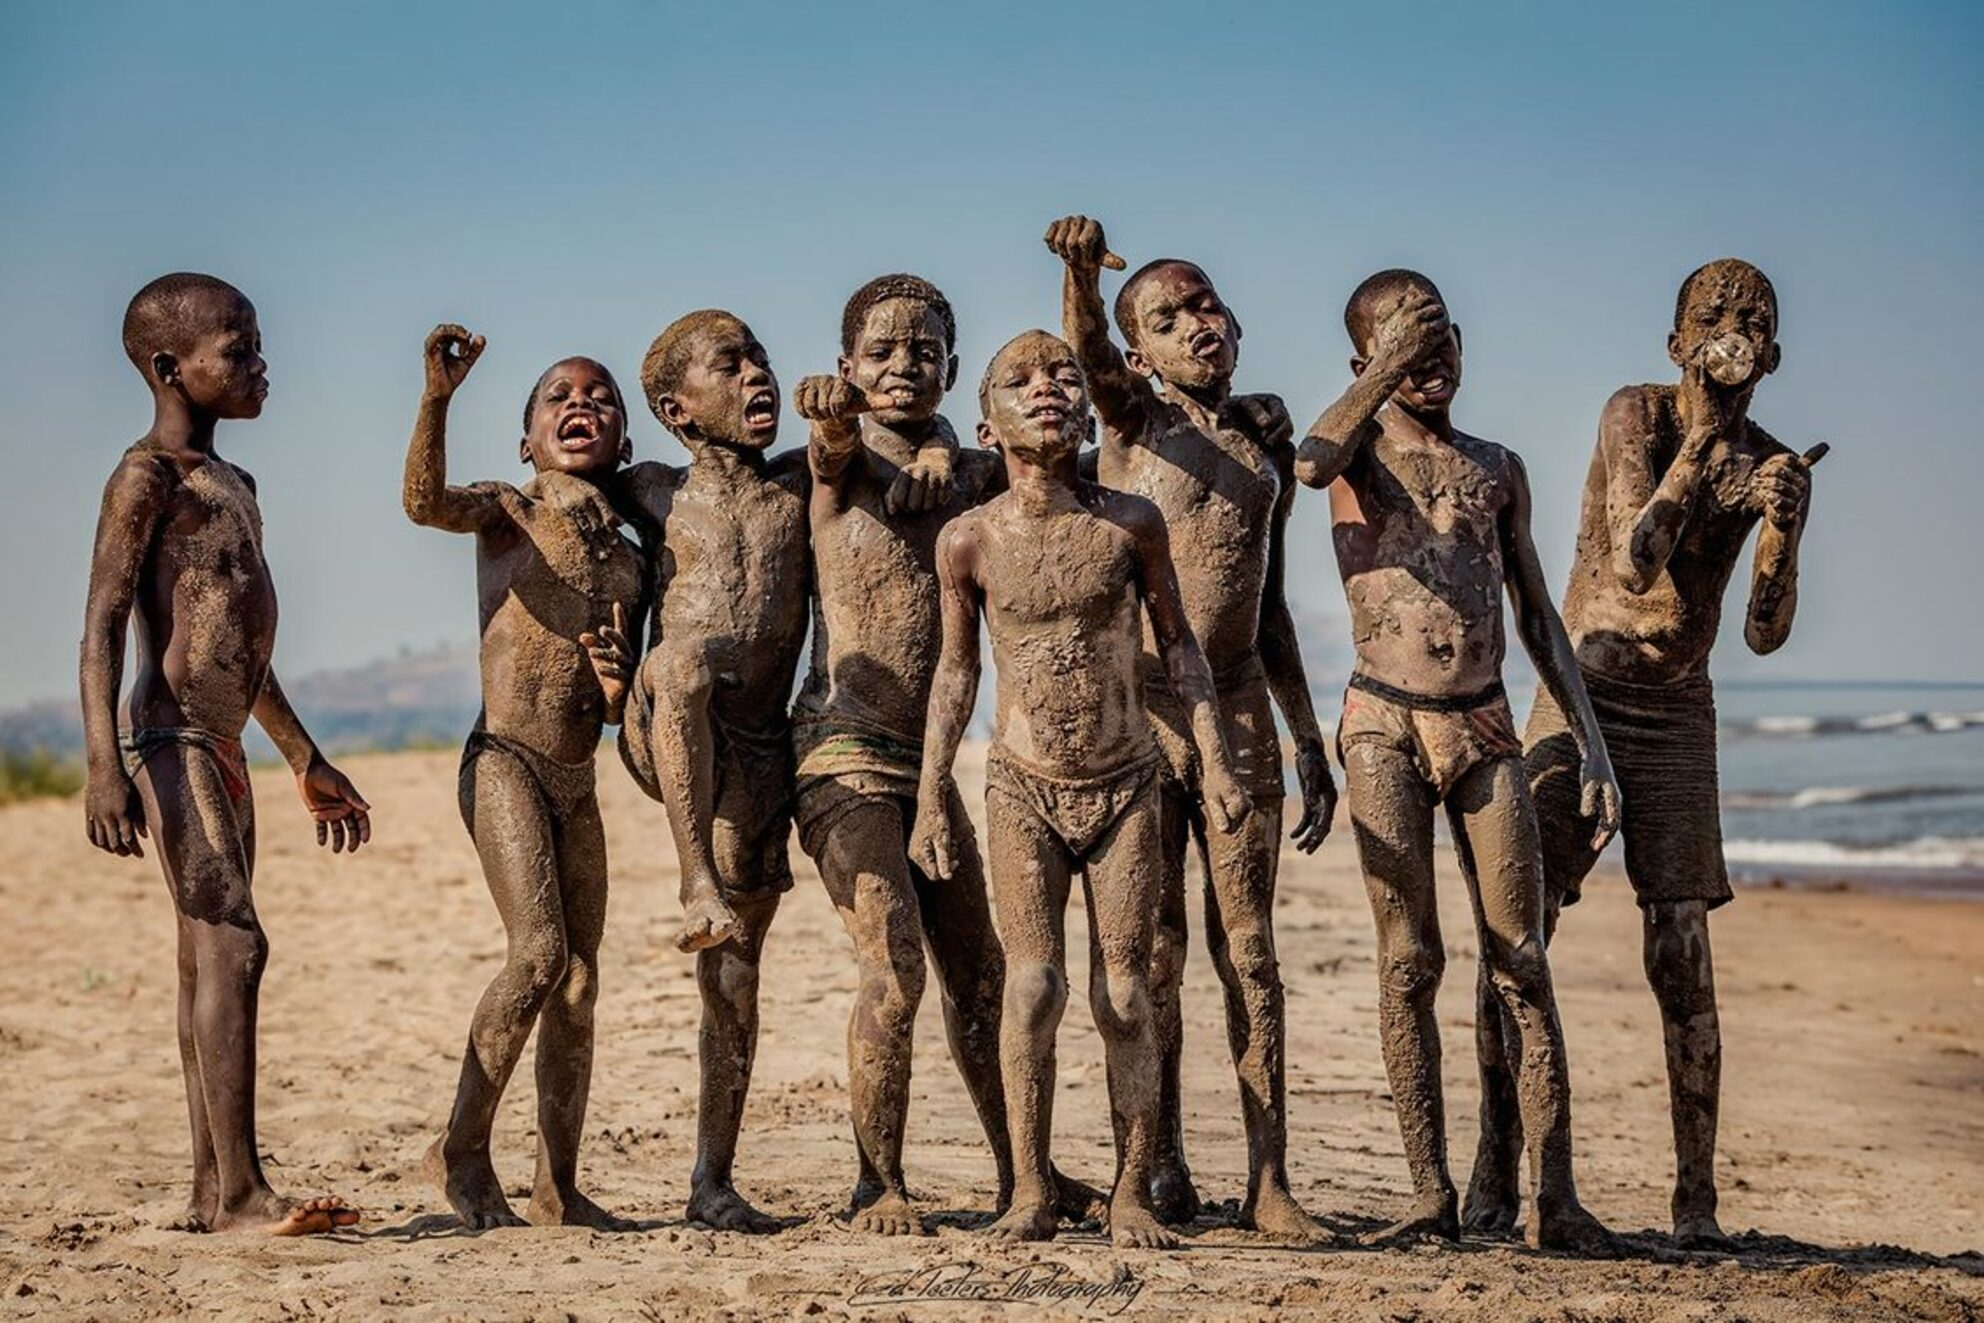 Sand Monsters - Boys on the beach of lake Malawi covered in sand and mud - foto door EdPeetersPhotography op 19-09-2016 - deze foto bevat: boys, afrika, beach, lake, sand, mud, malawi, edpeetersphotography, chitimba